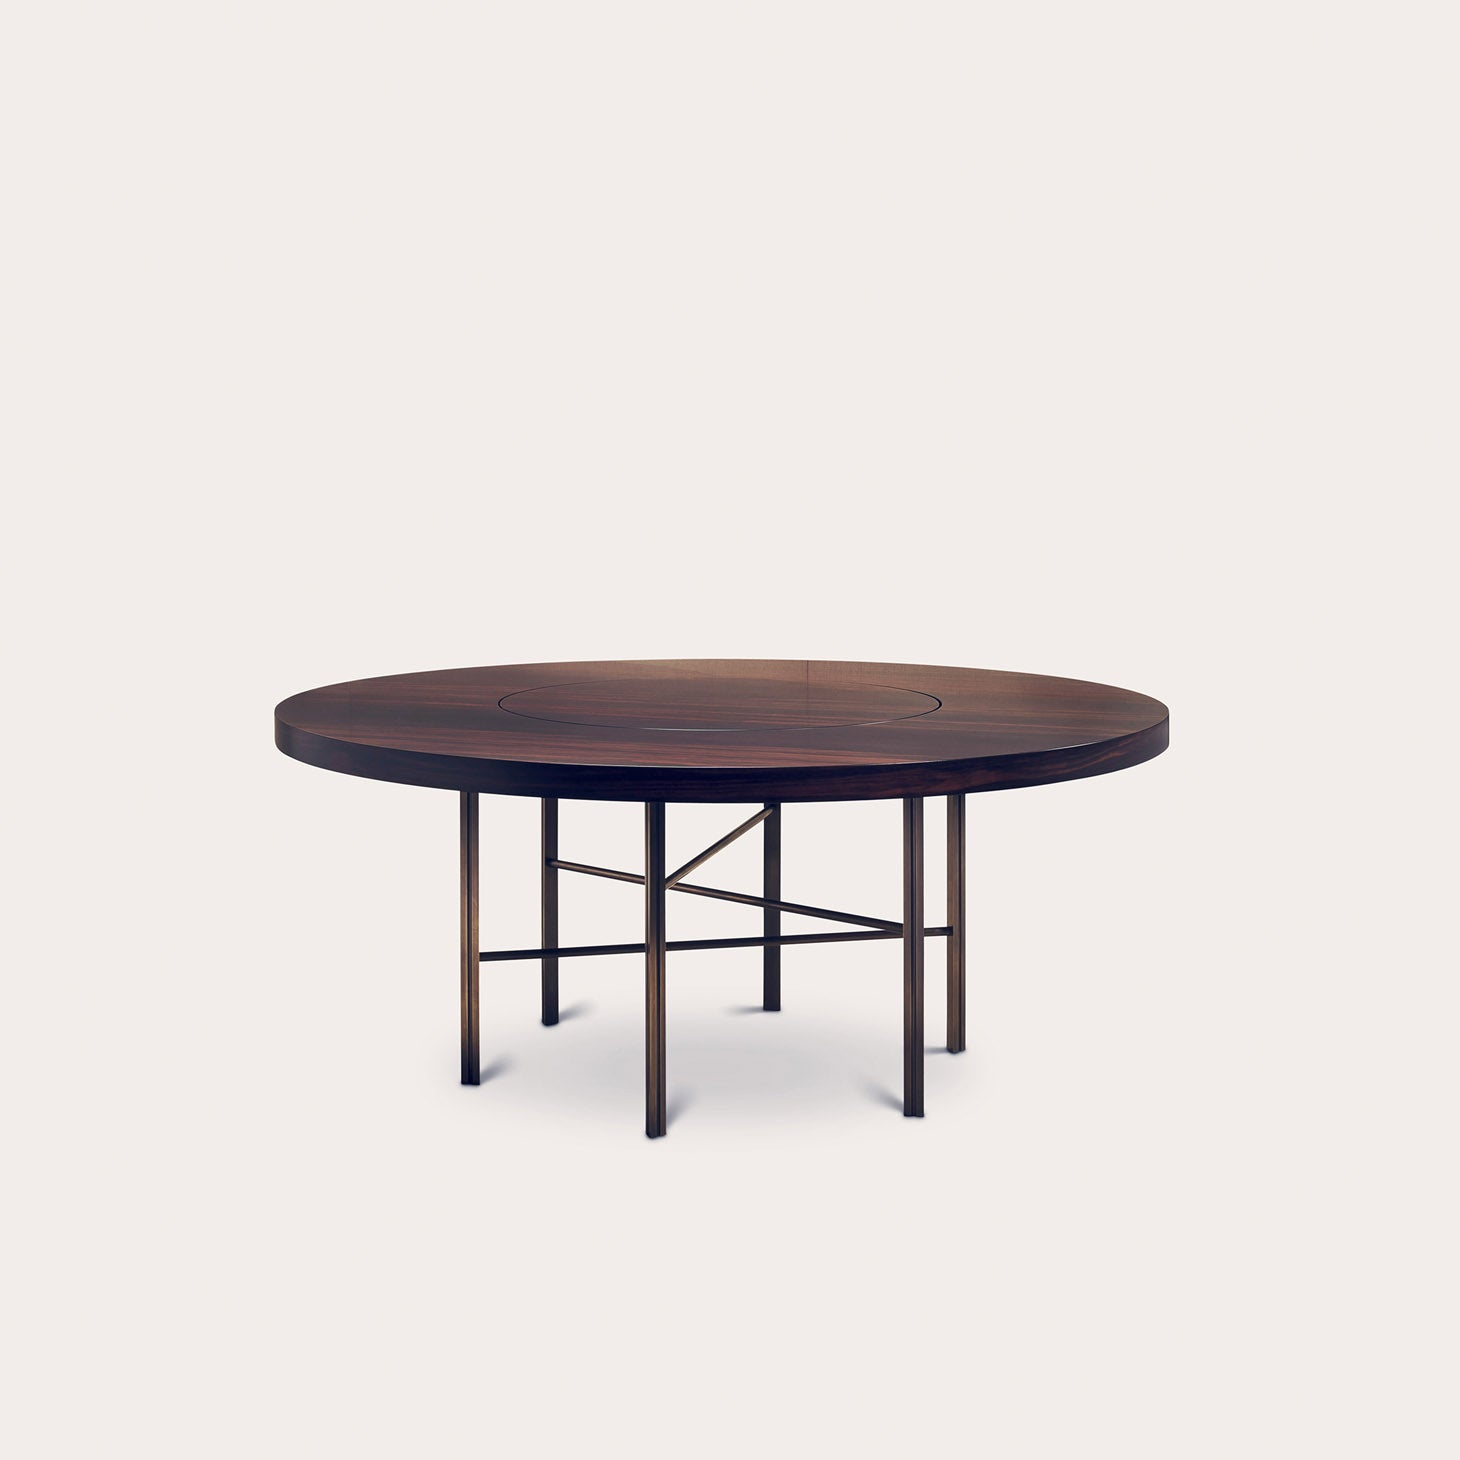 SUASA Tables Bruno Moinard Designer Furniture Sku: 773-230-10057